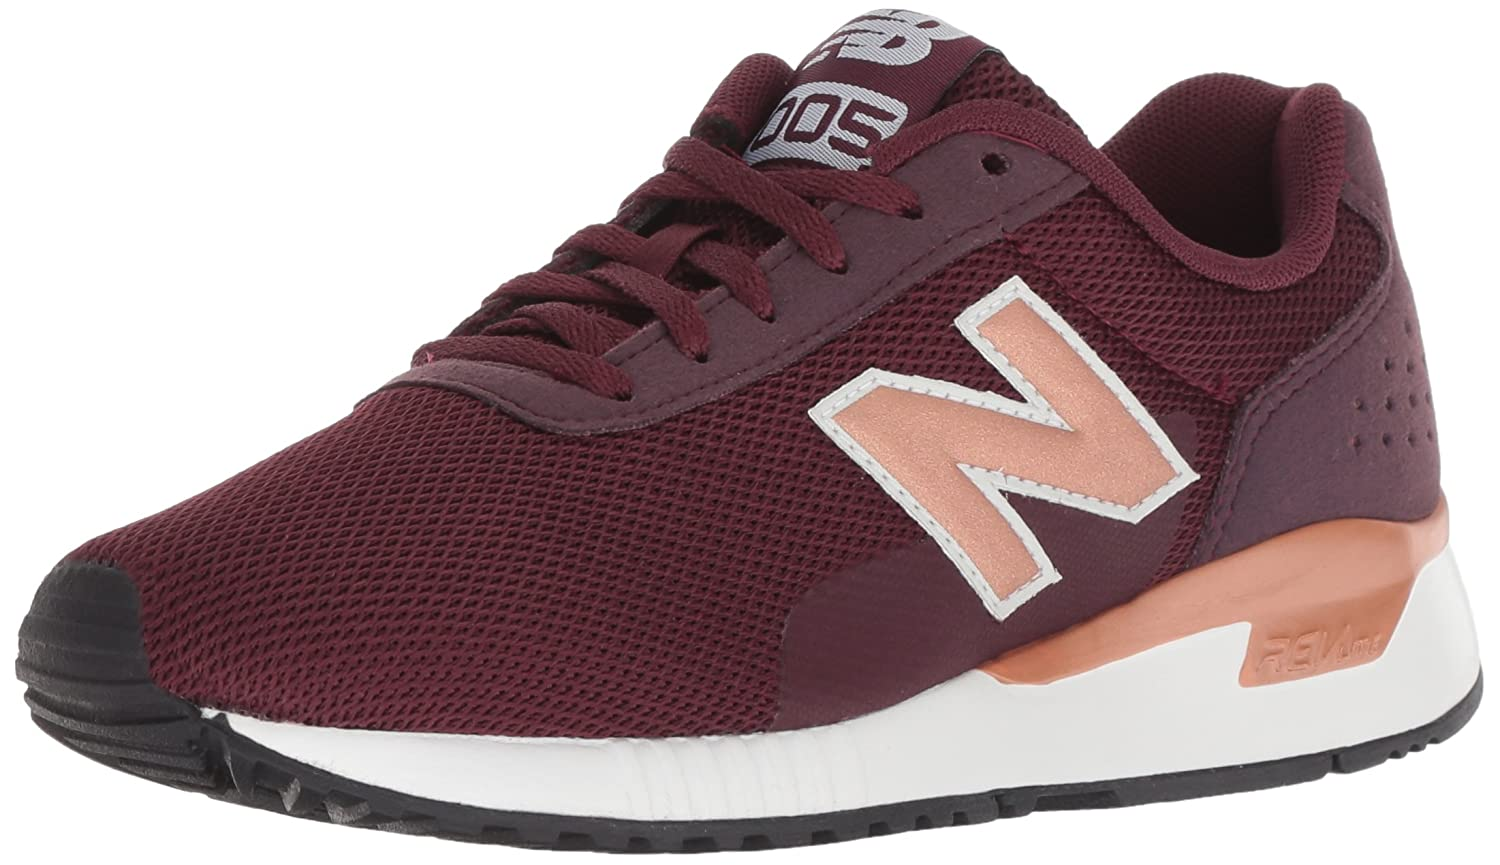 New Balance Women's 5v2 US|Dusted Sneaker B075R7D17S 8 D US|Dusted 5v2 Peach a3d488